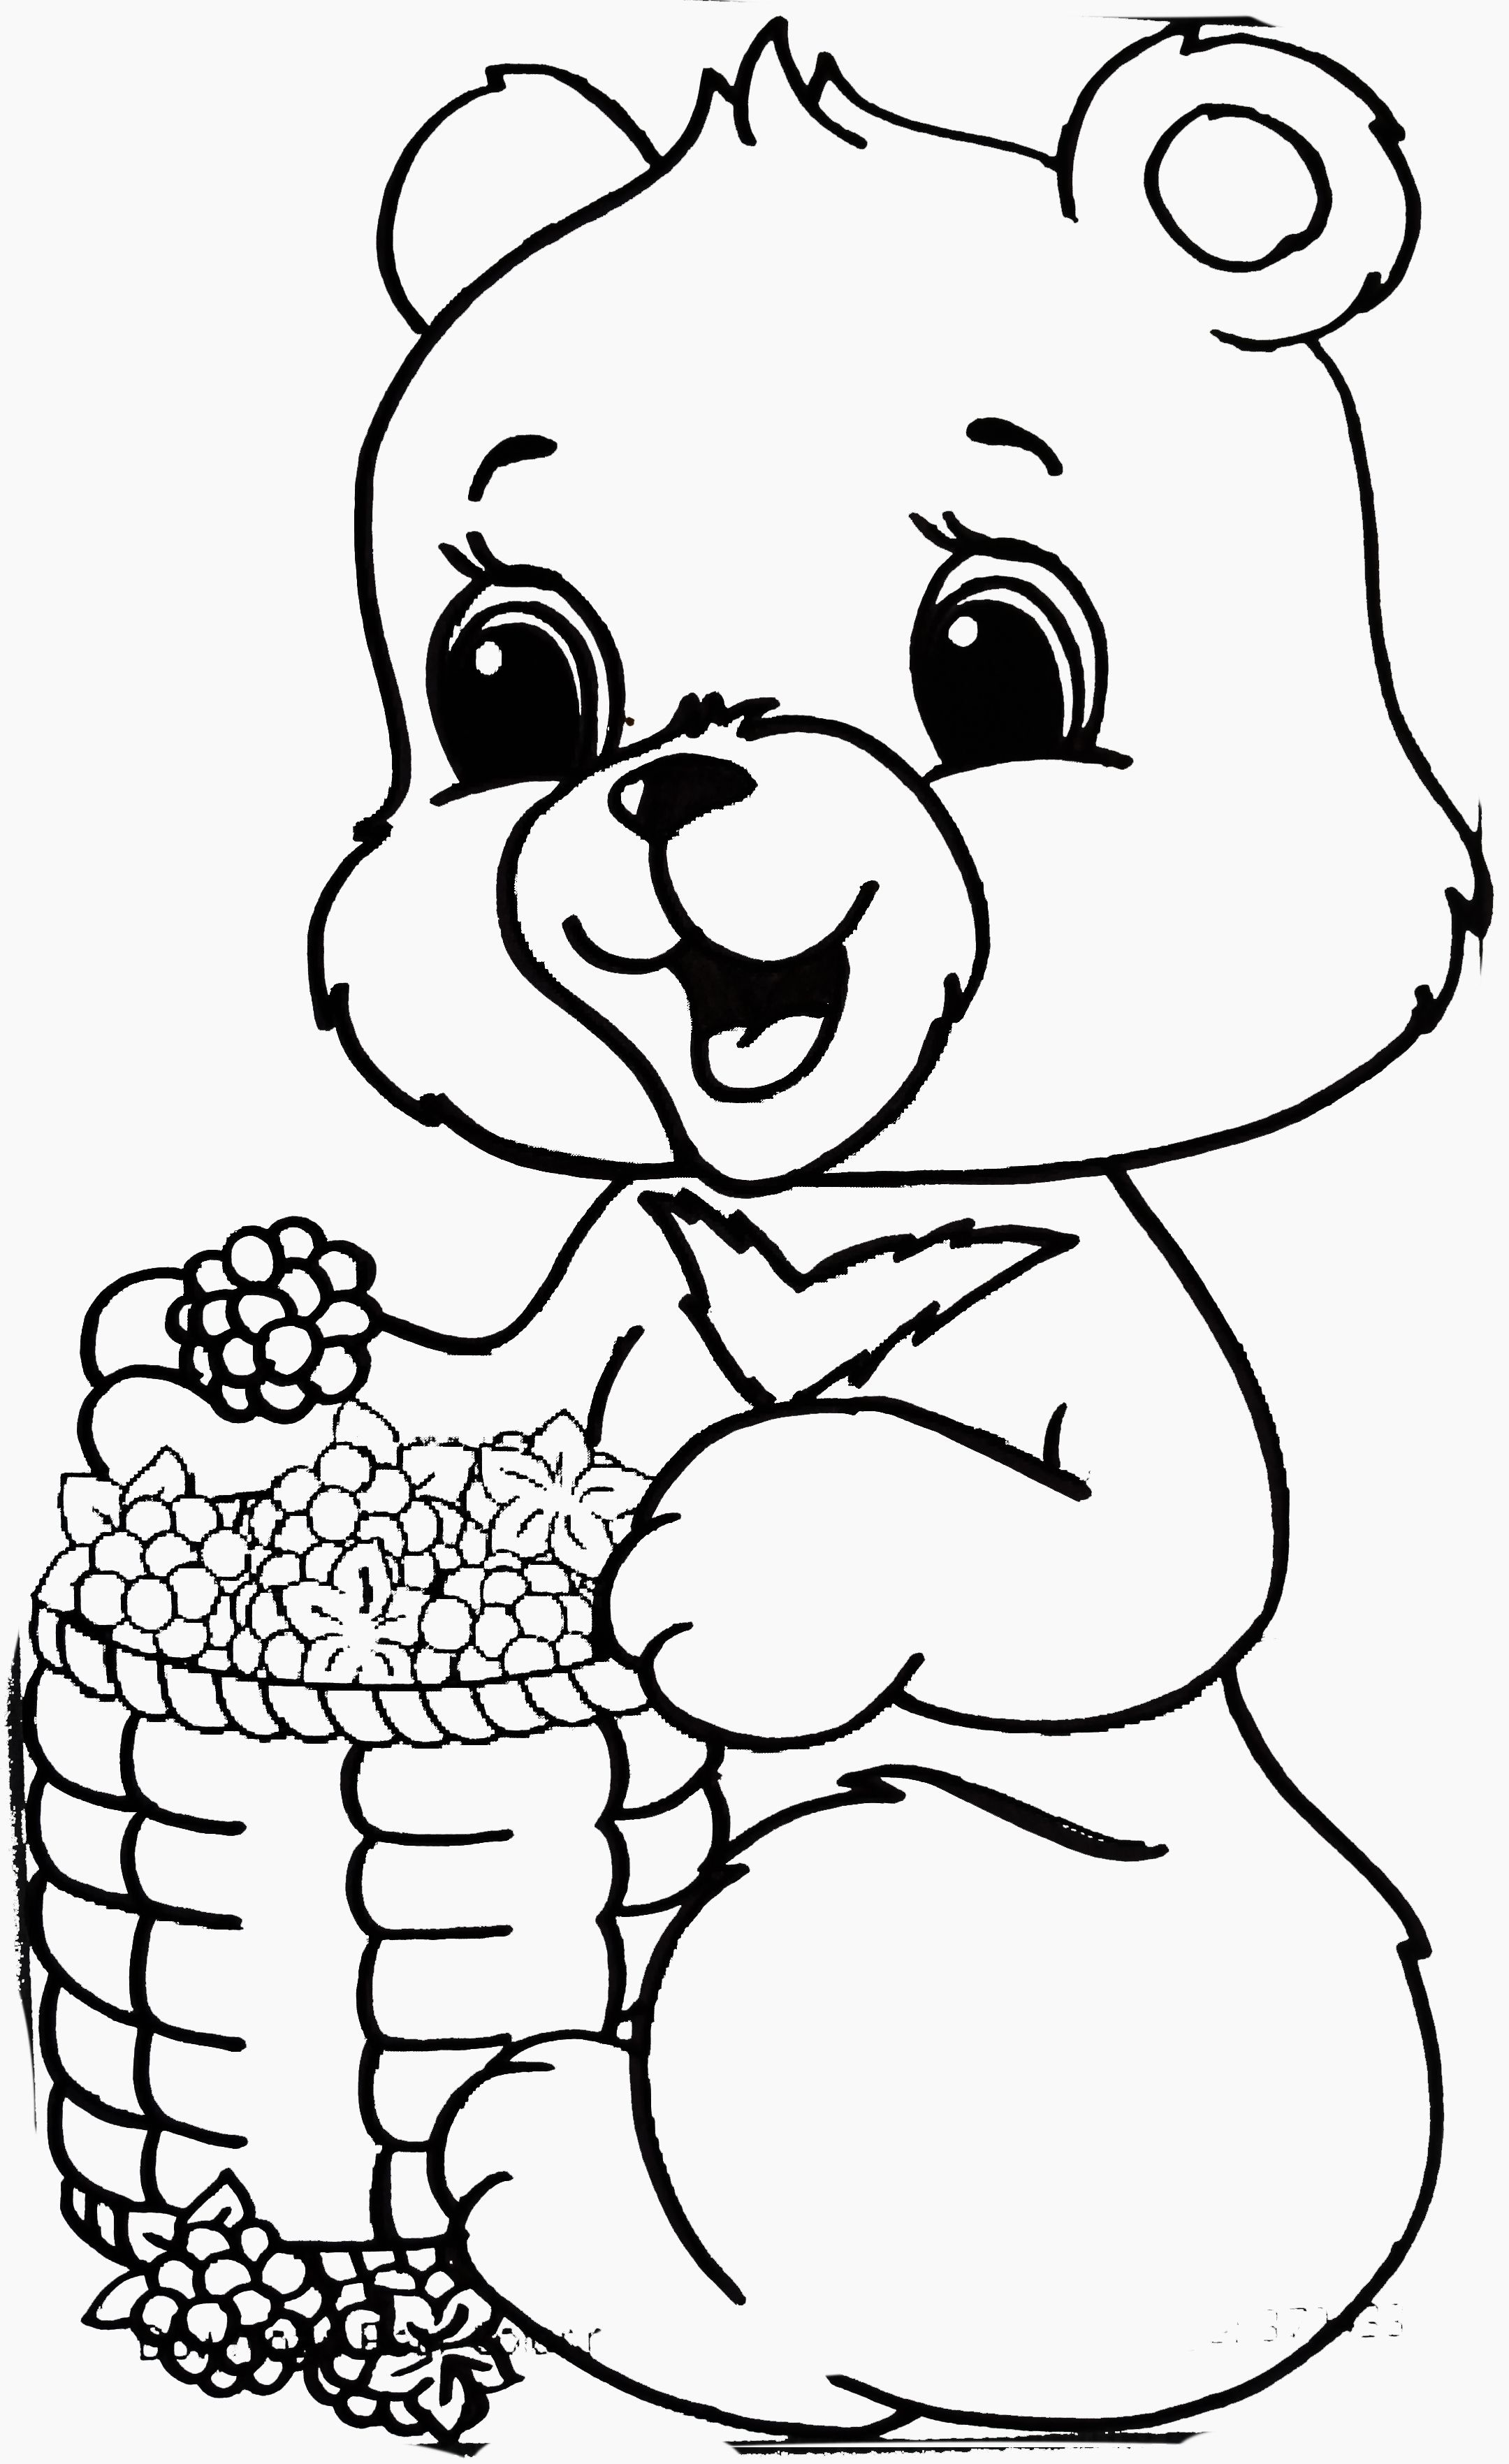 stuffed animal coloring pages stuffed animal coloring pages coloring home coloring pages animal stuffed